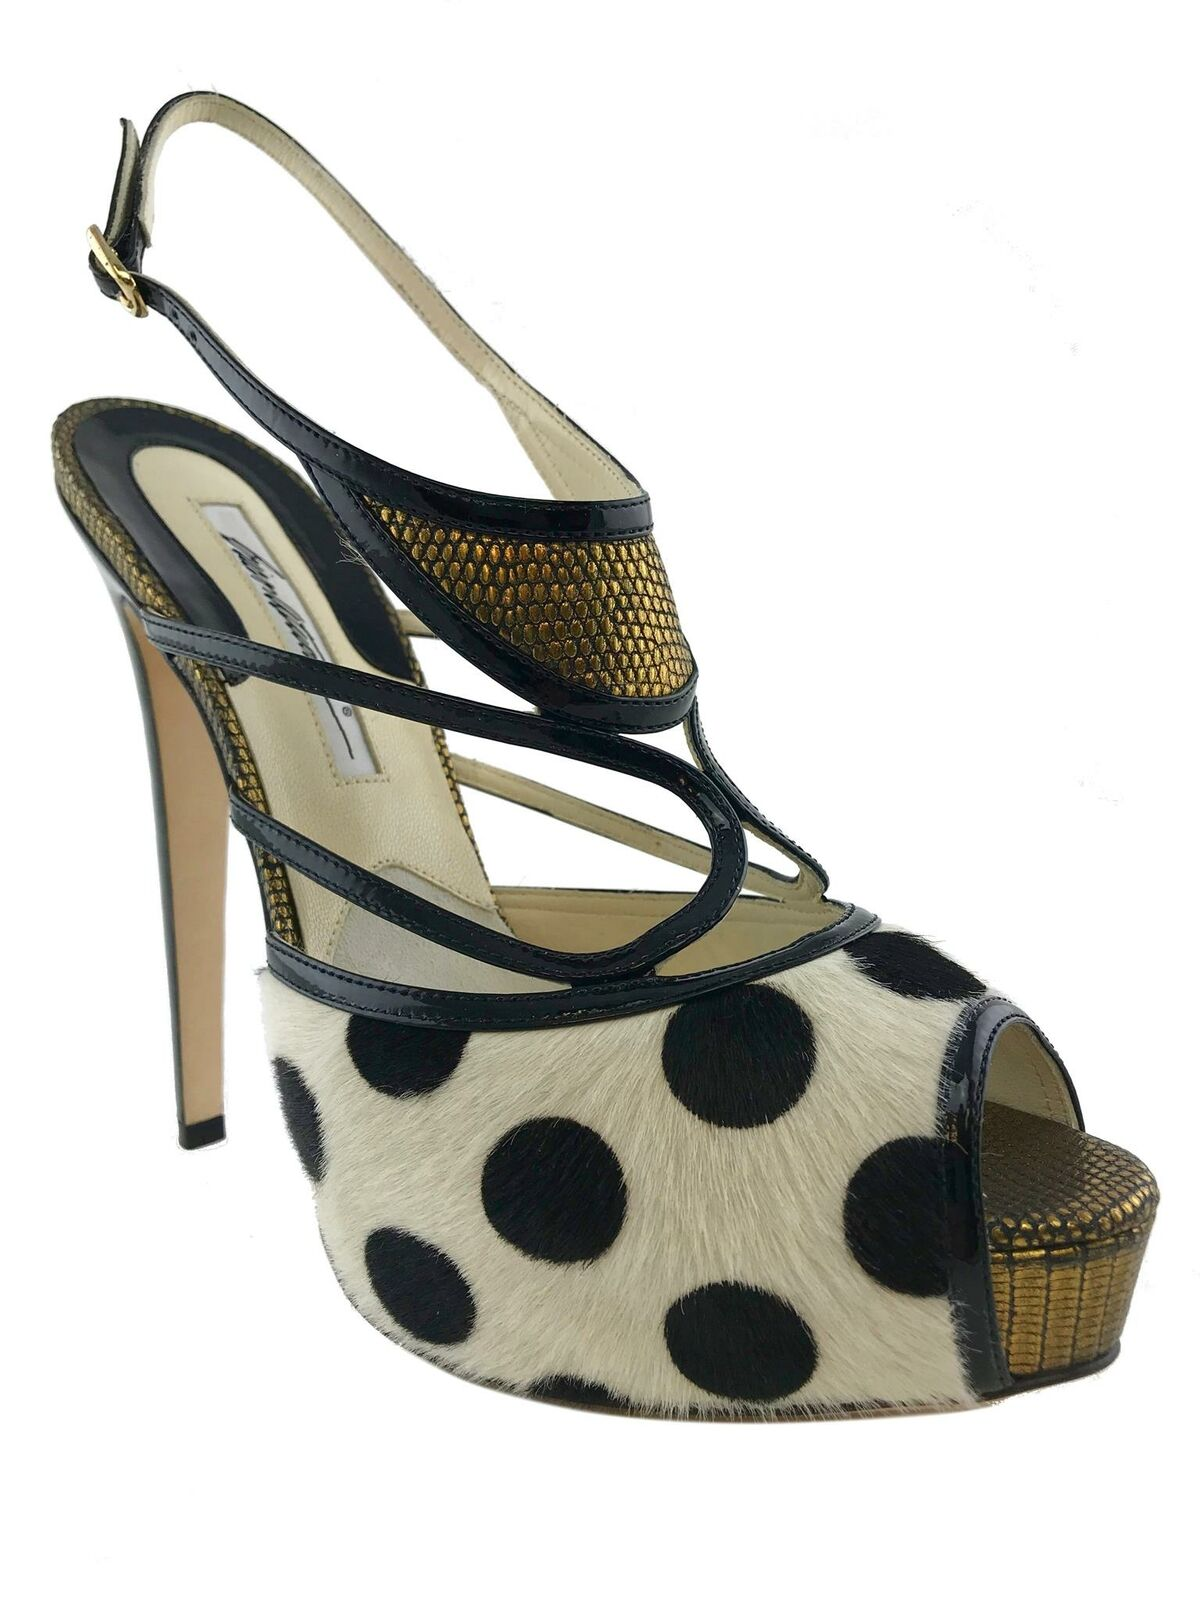 Brian Atwood Aura Polka-Dot Calf Hair Sandals Size 9.5